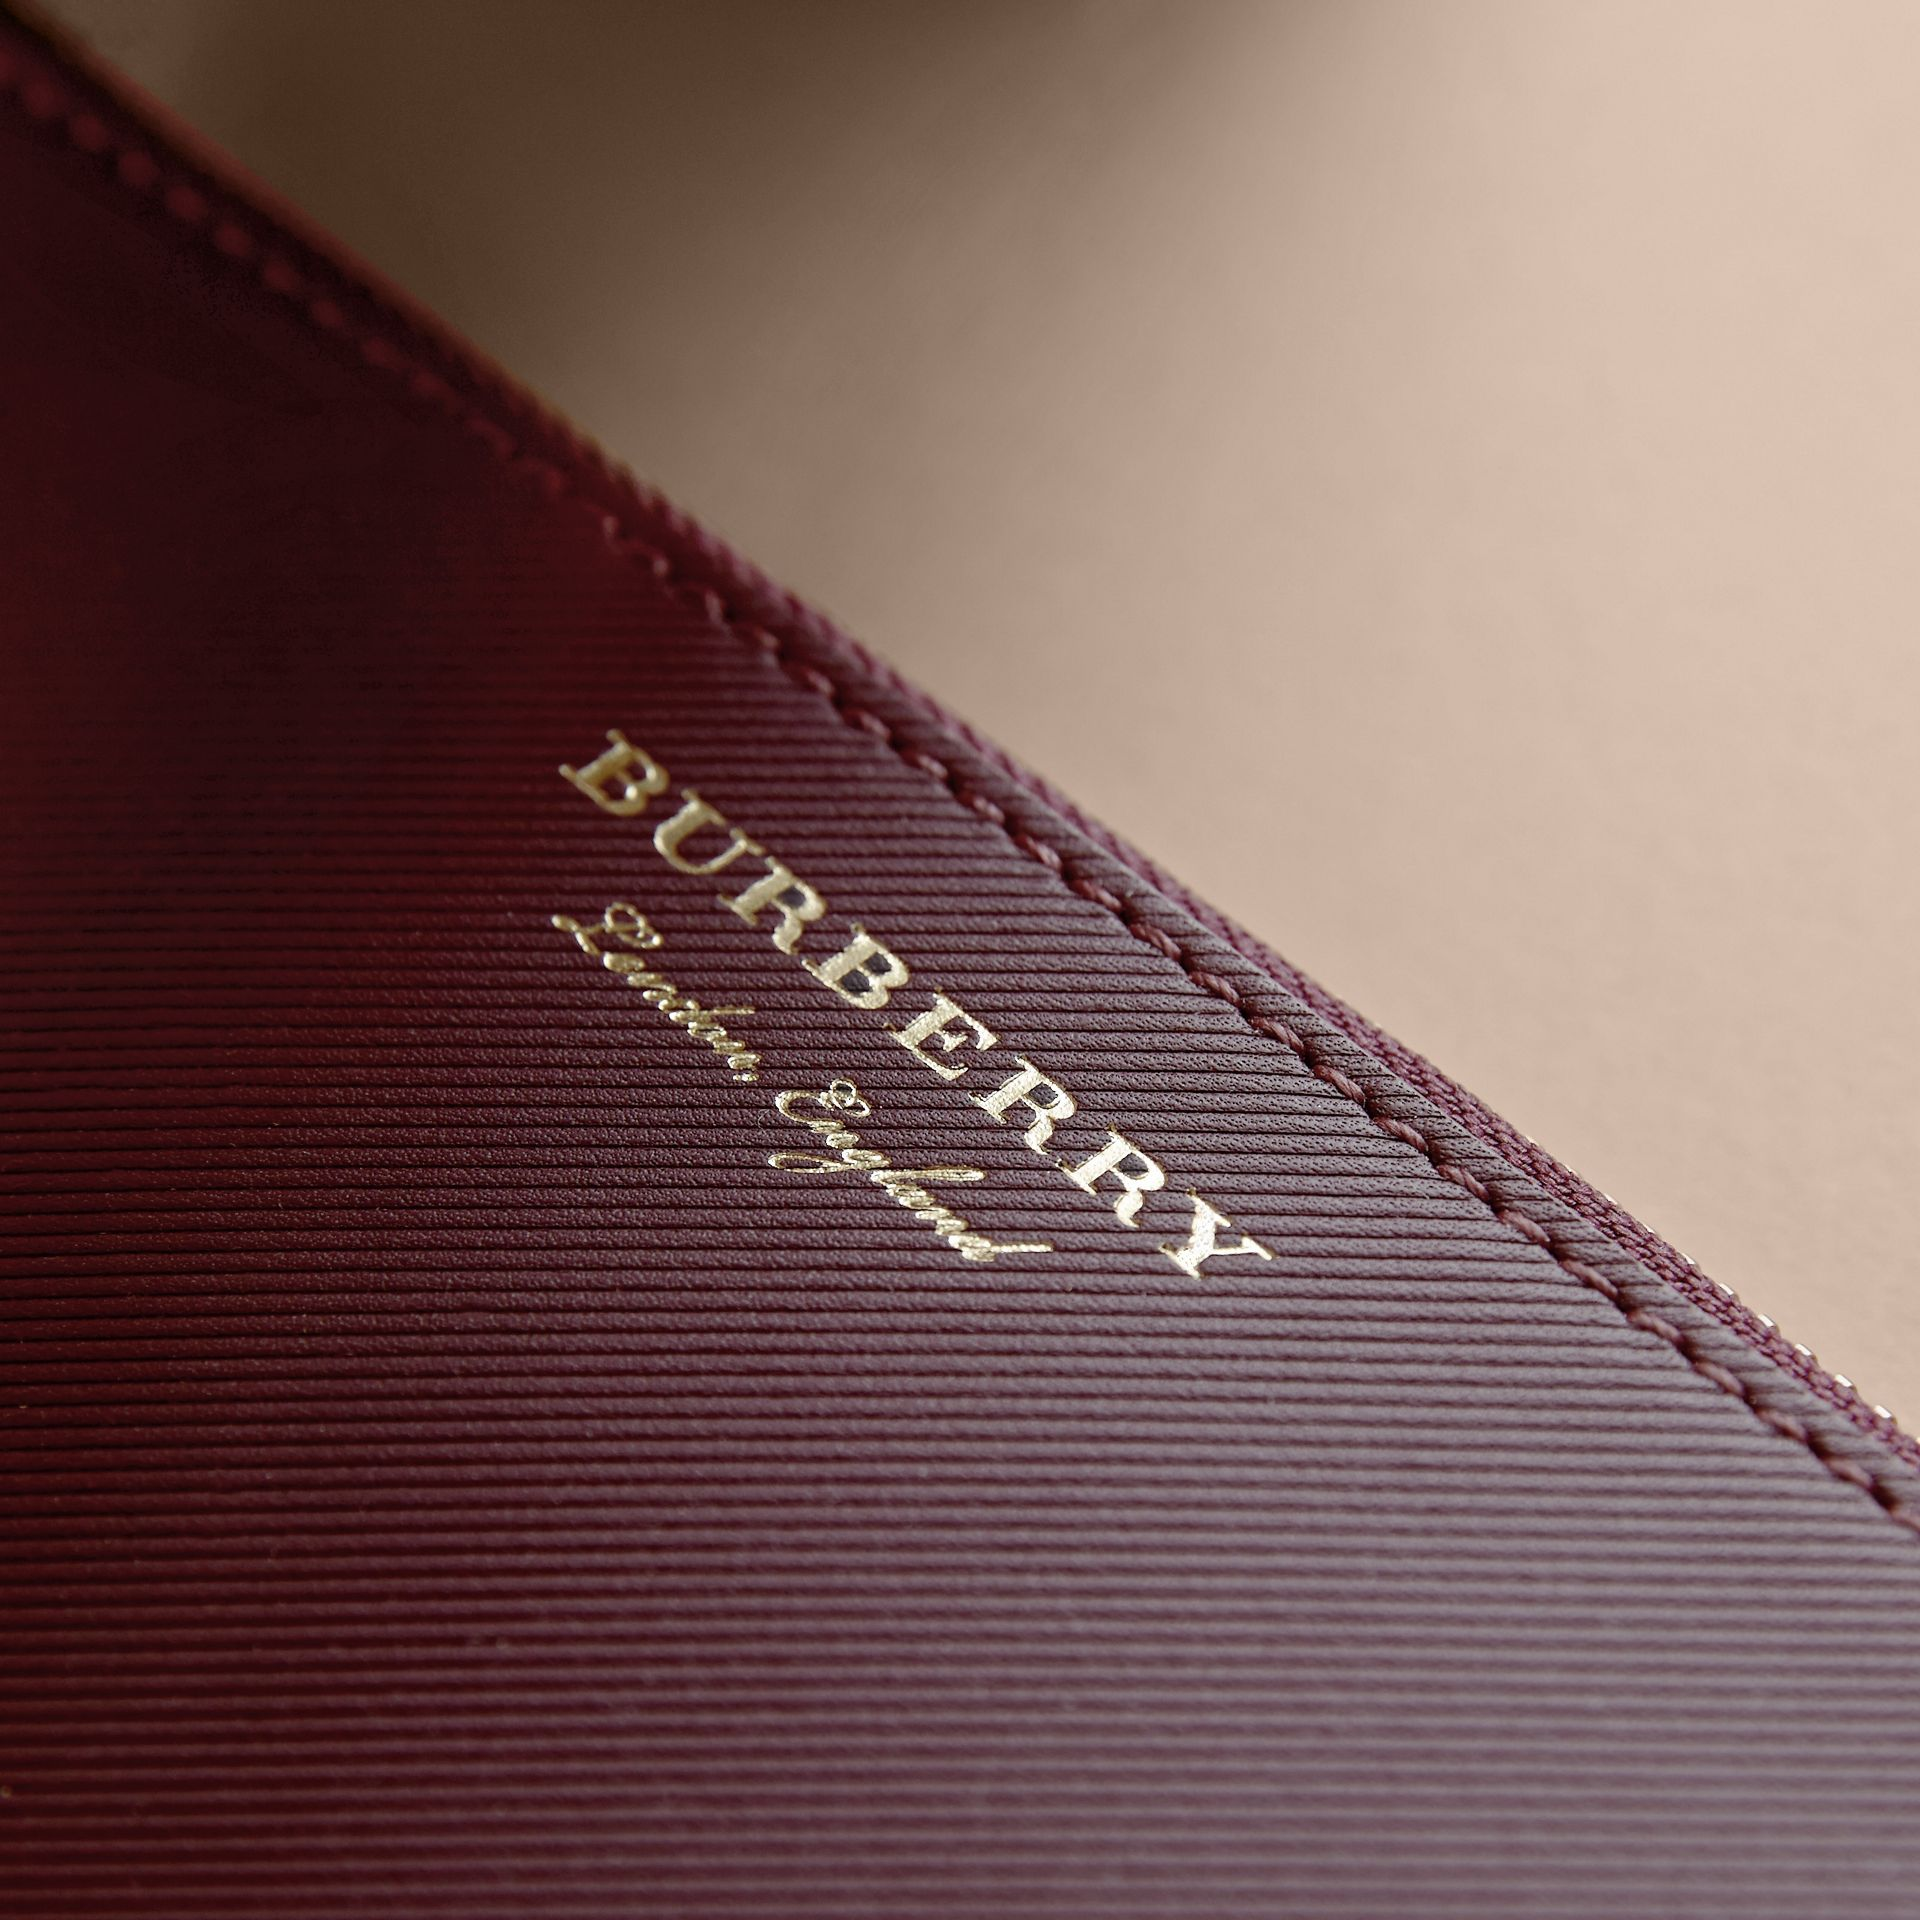 Two-tone Trench Leather Travel Wallet in Wine - Men | Burberry Hong Kong - gallery image 2